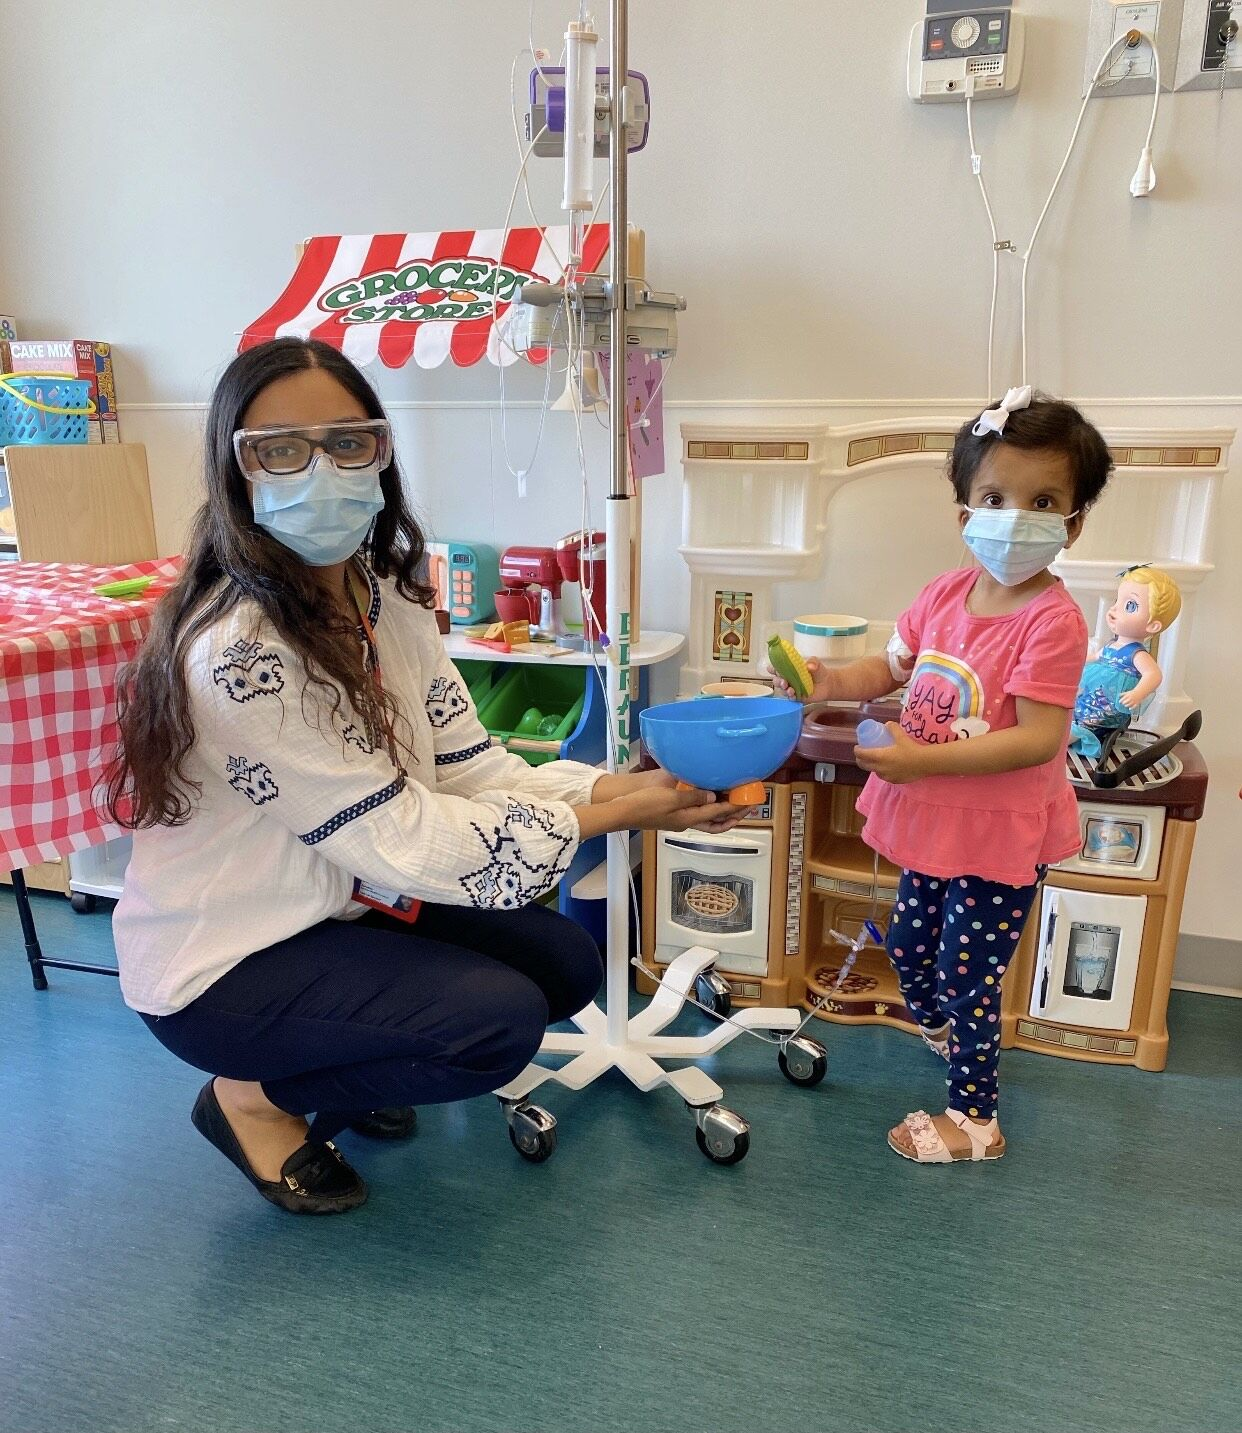 Community Heroes: Child Life Services at The Montreal Children's Hospital